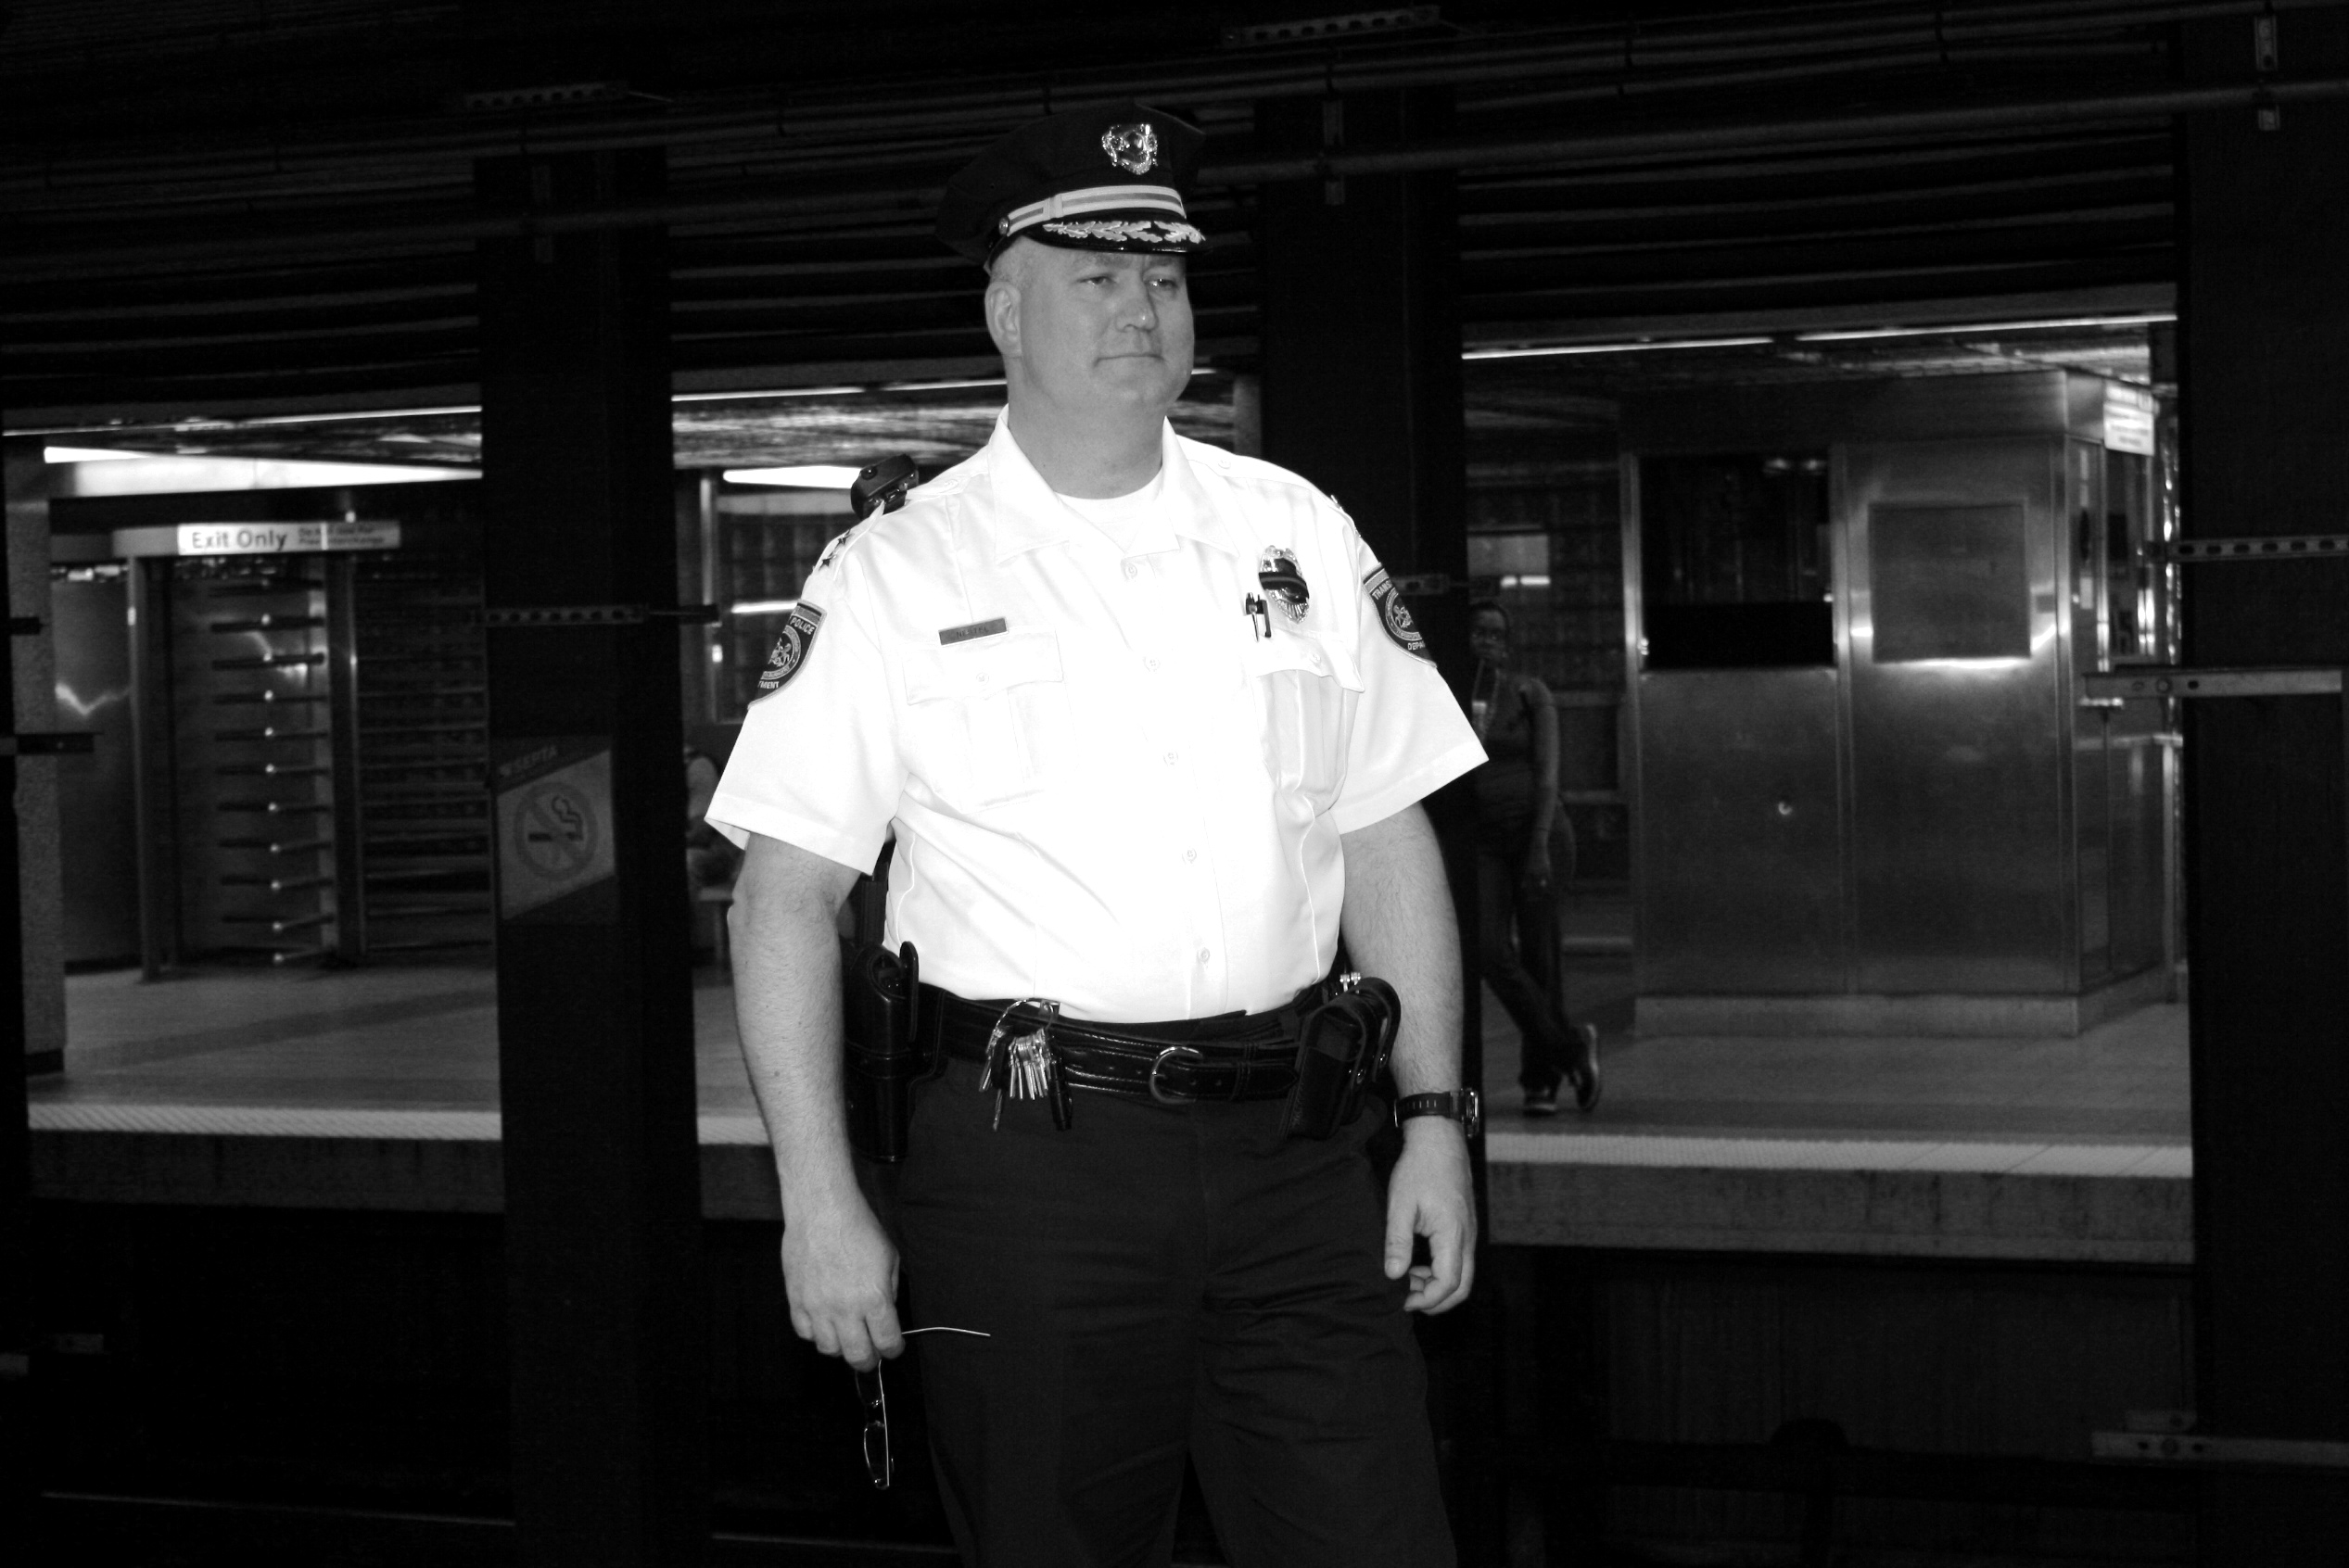 Chief Nestel at 13th Street Station